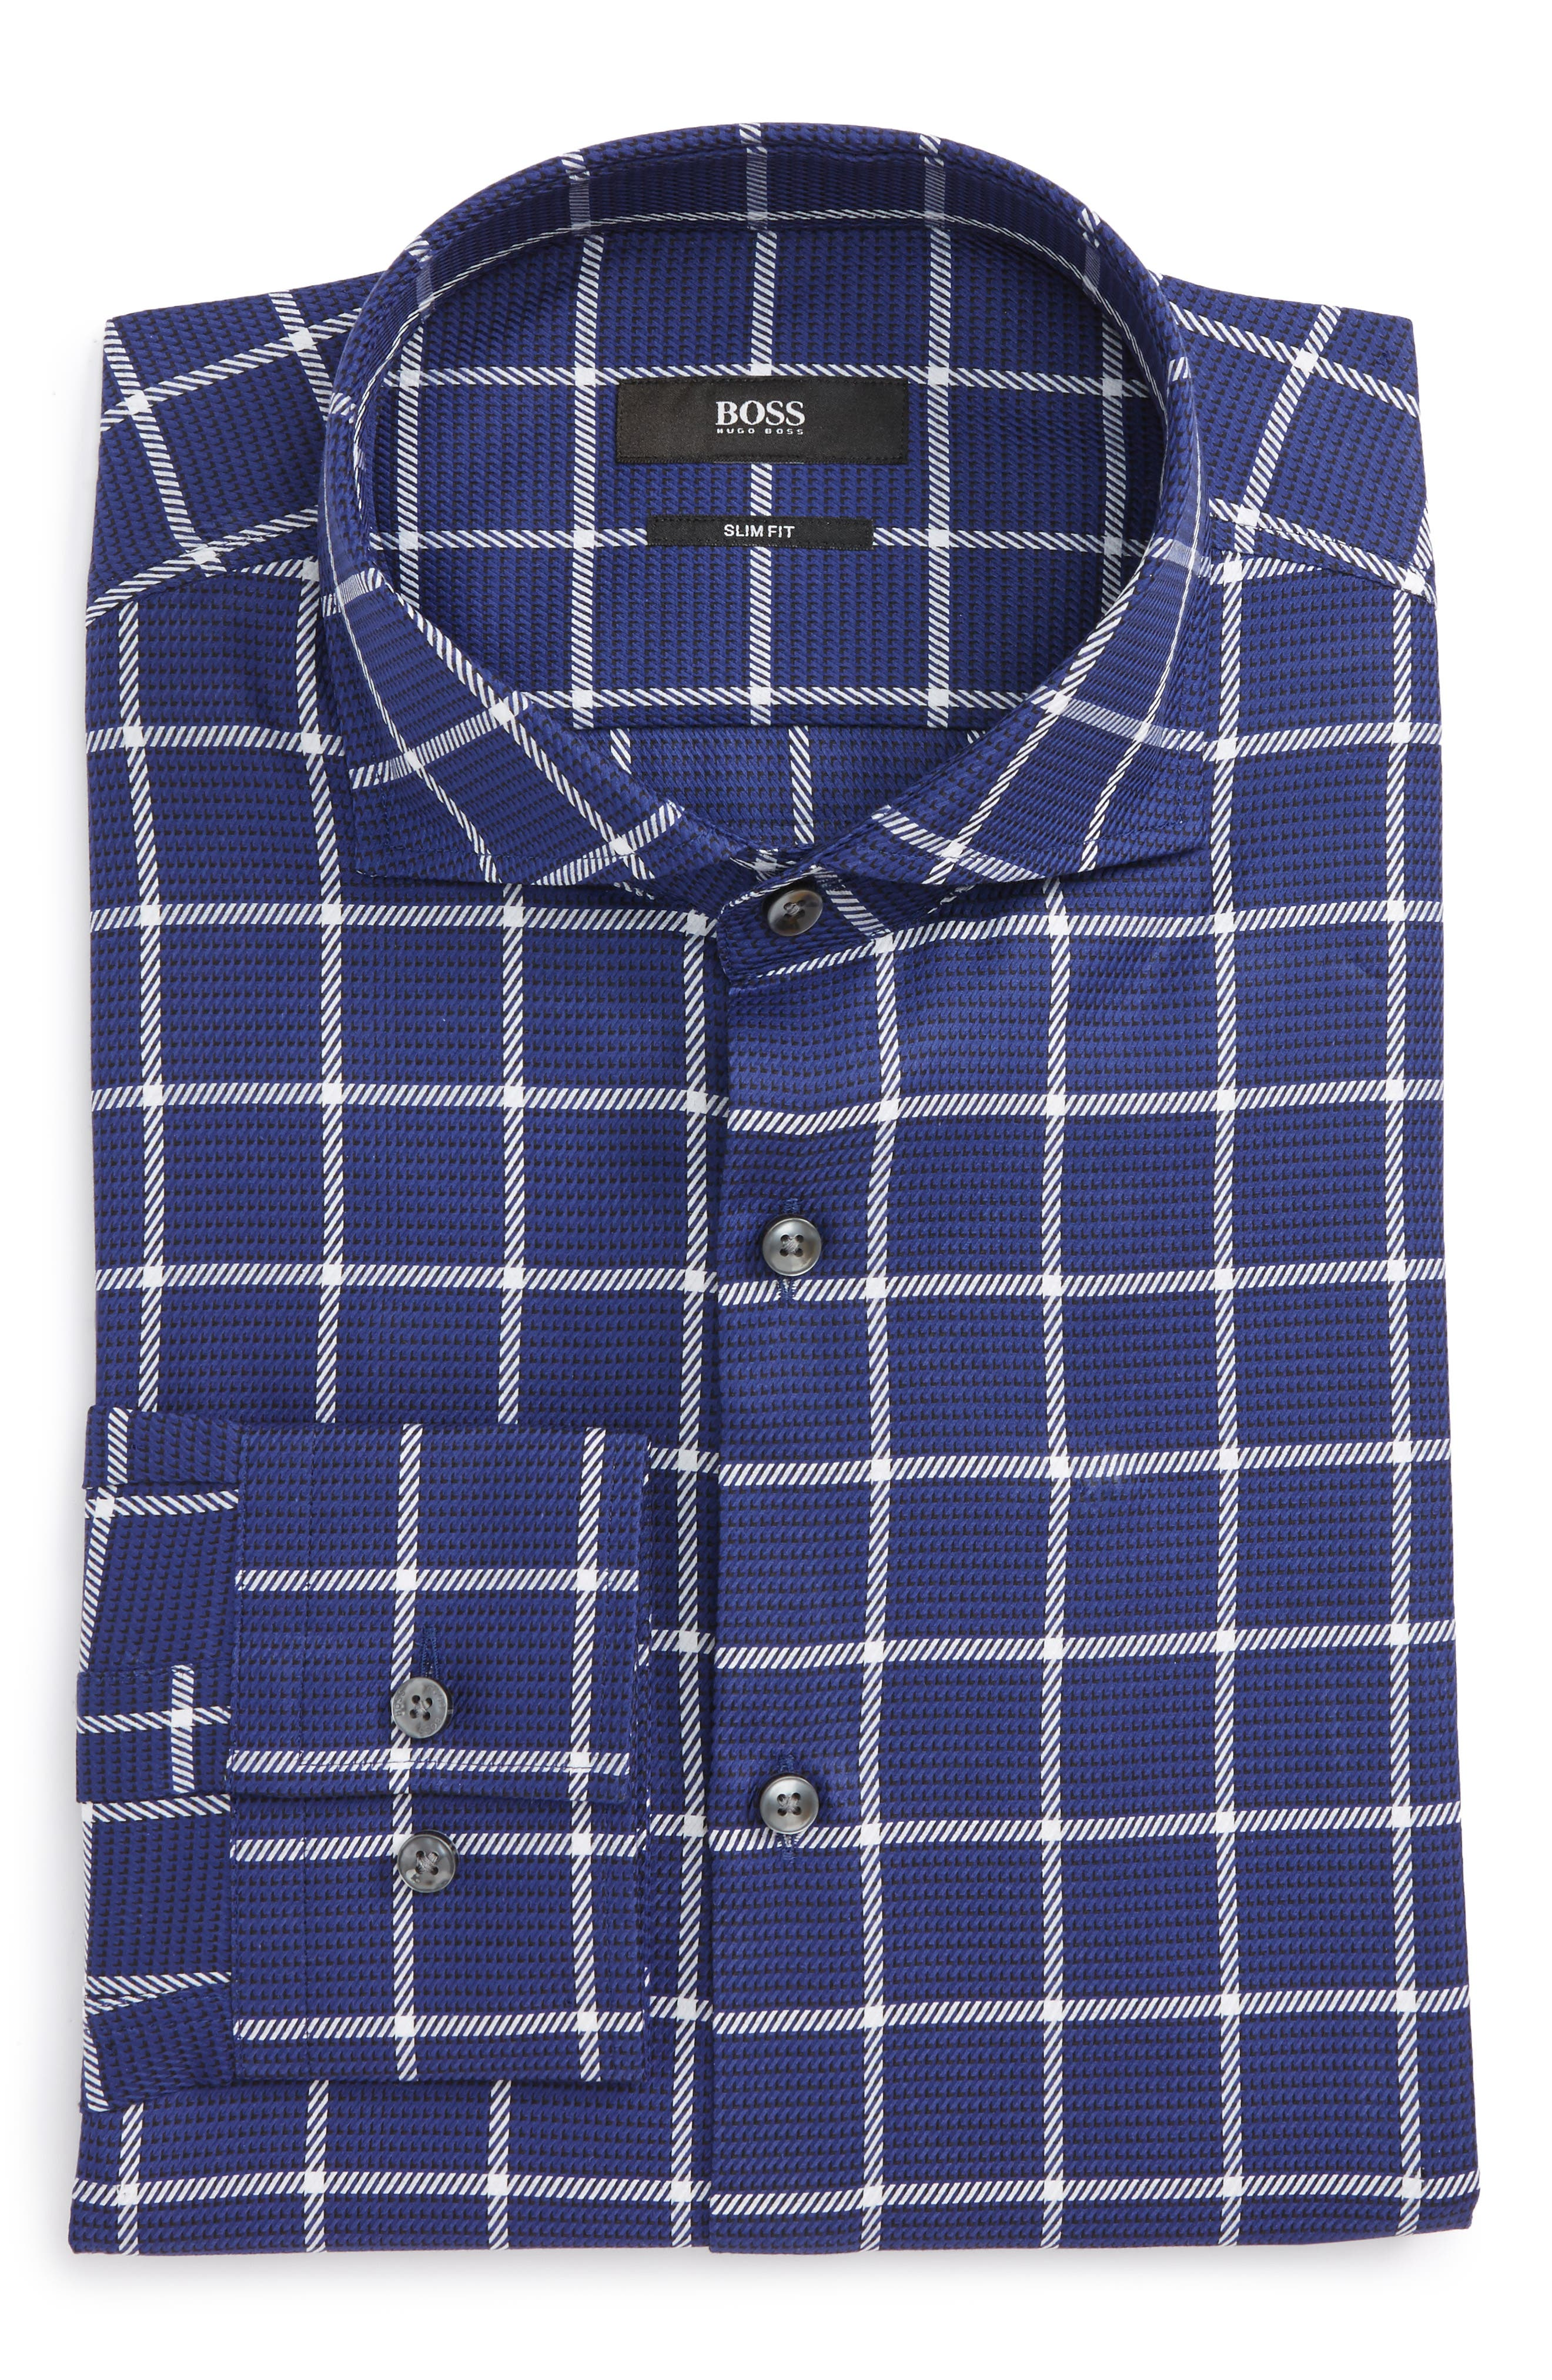 Jason Slim Fit Windowpane Dress Shirt,                             Main thumbnail 1, color,                             Blue